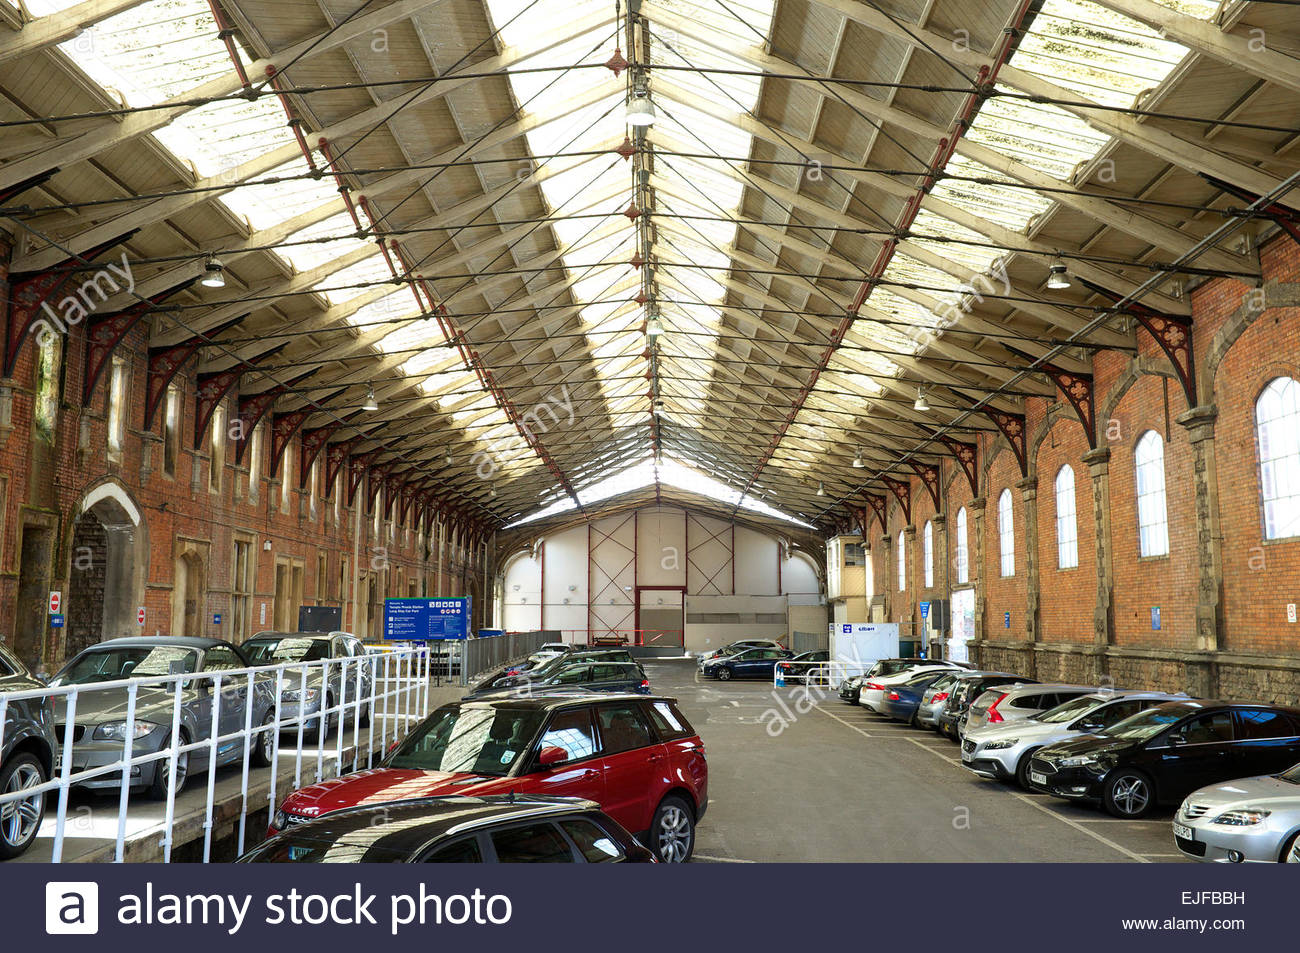 Inside the original Temple Meads railway station, showing the extended train shed section, Bristol, UK. Stock Photo